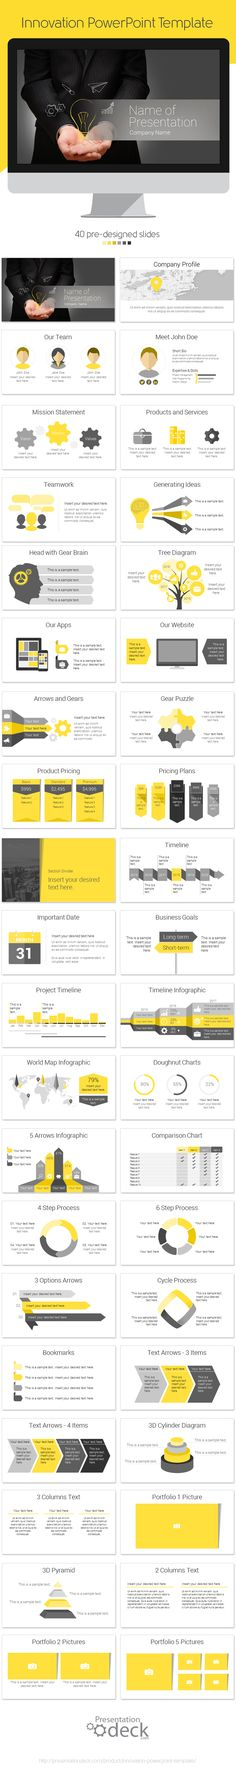 Innovation PowerPoint template containing 40 pre-designed slides. #powerpoint #powerpoint_template #presentations #innovation